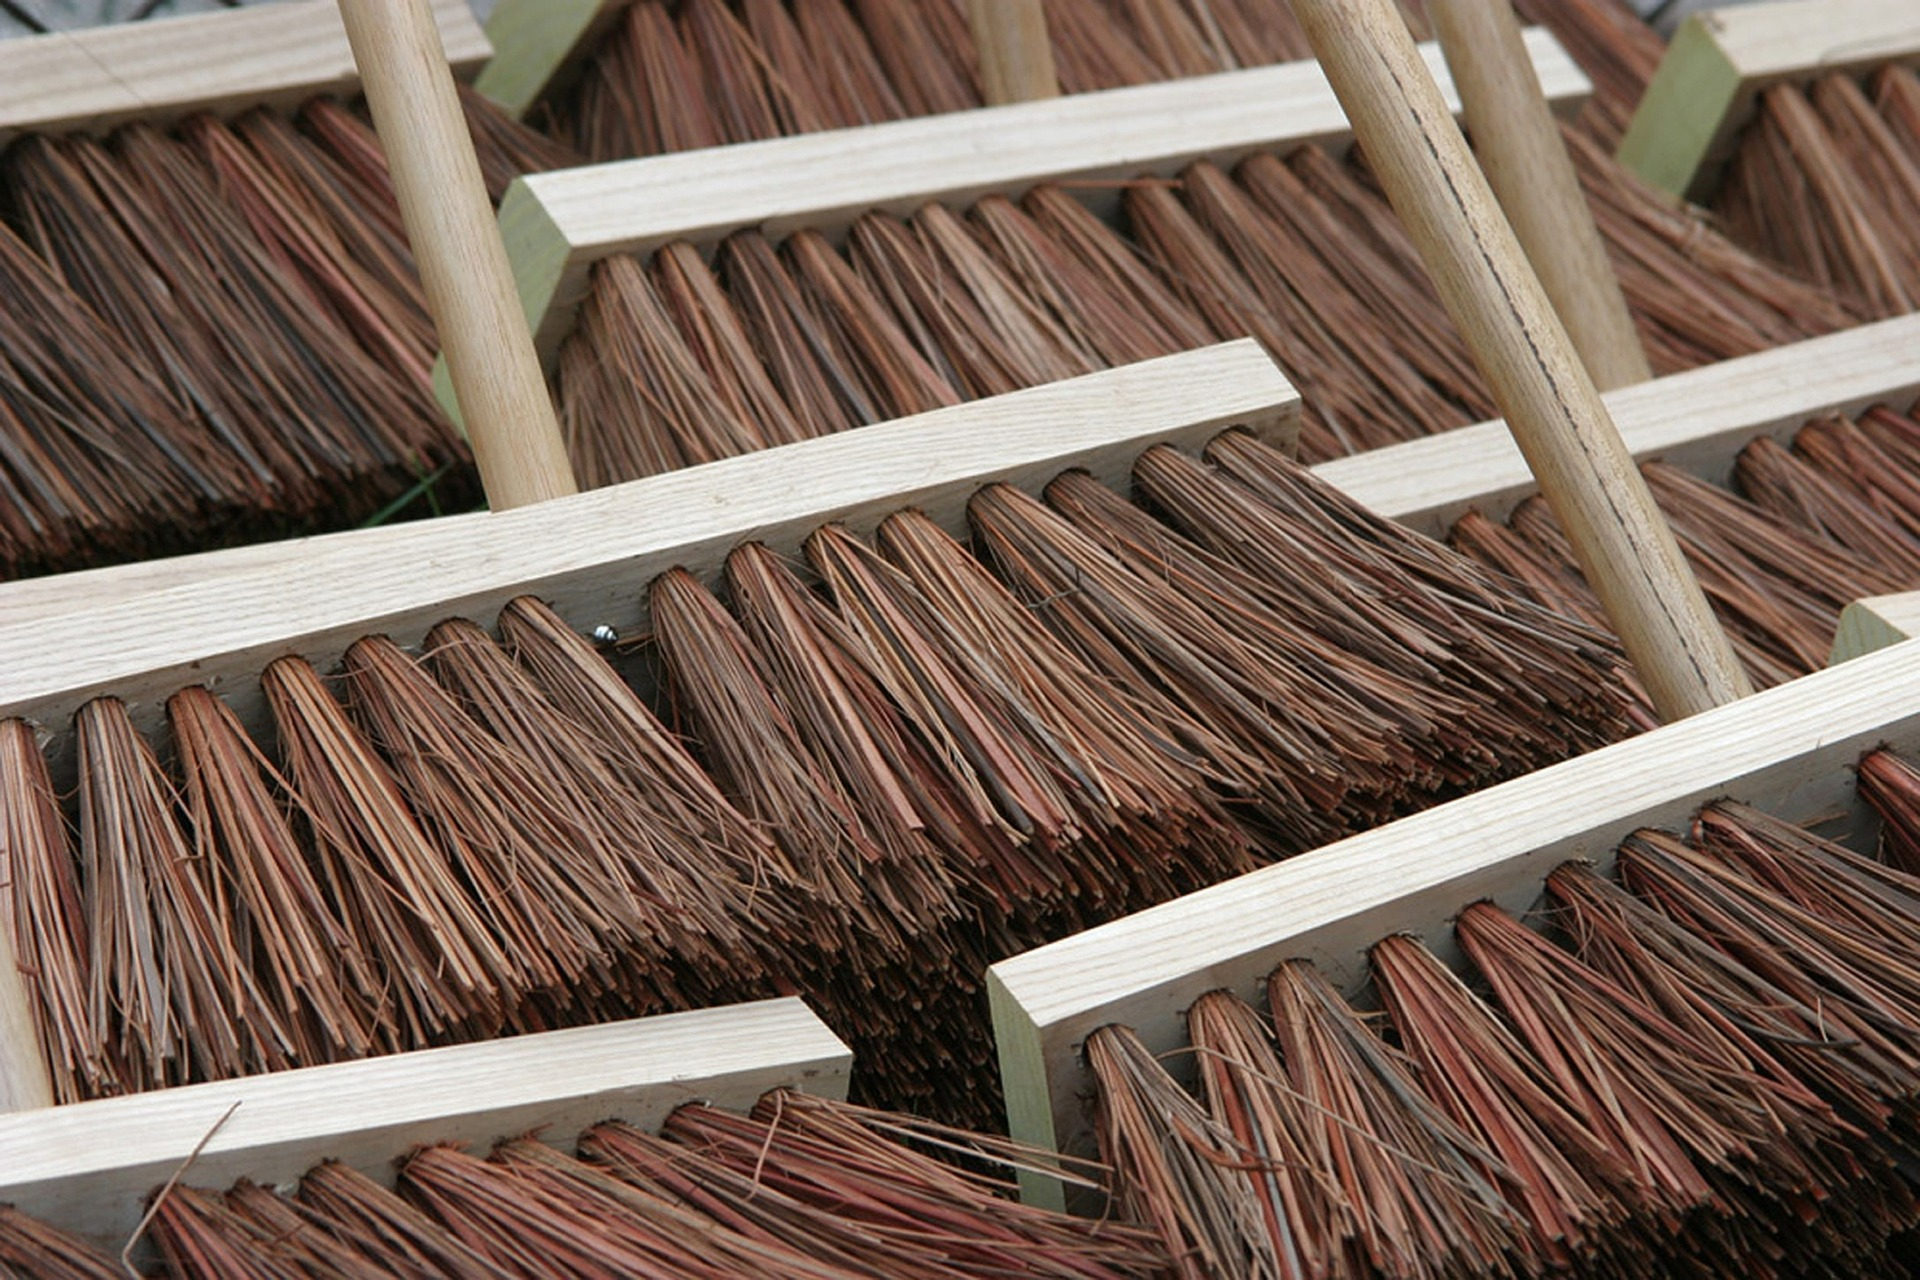 Picture of Brooms